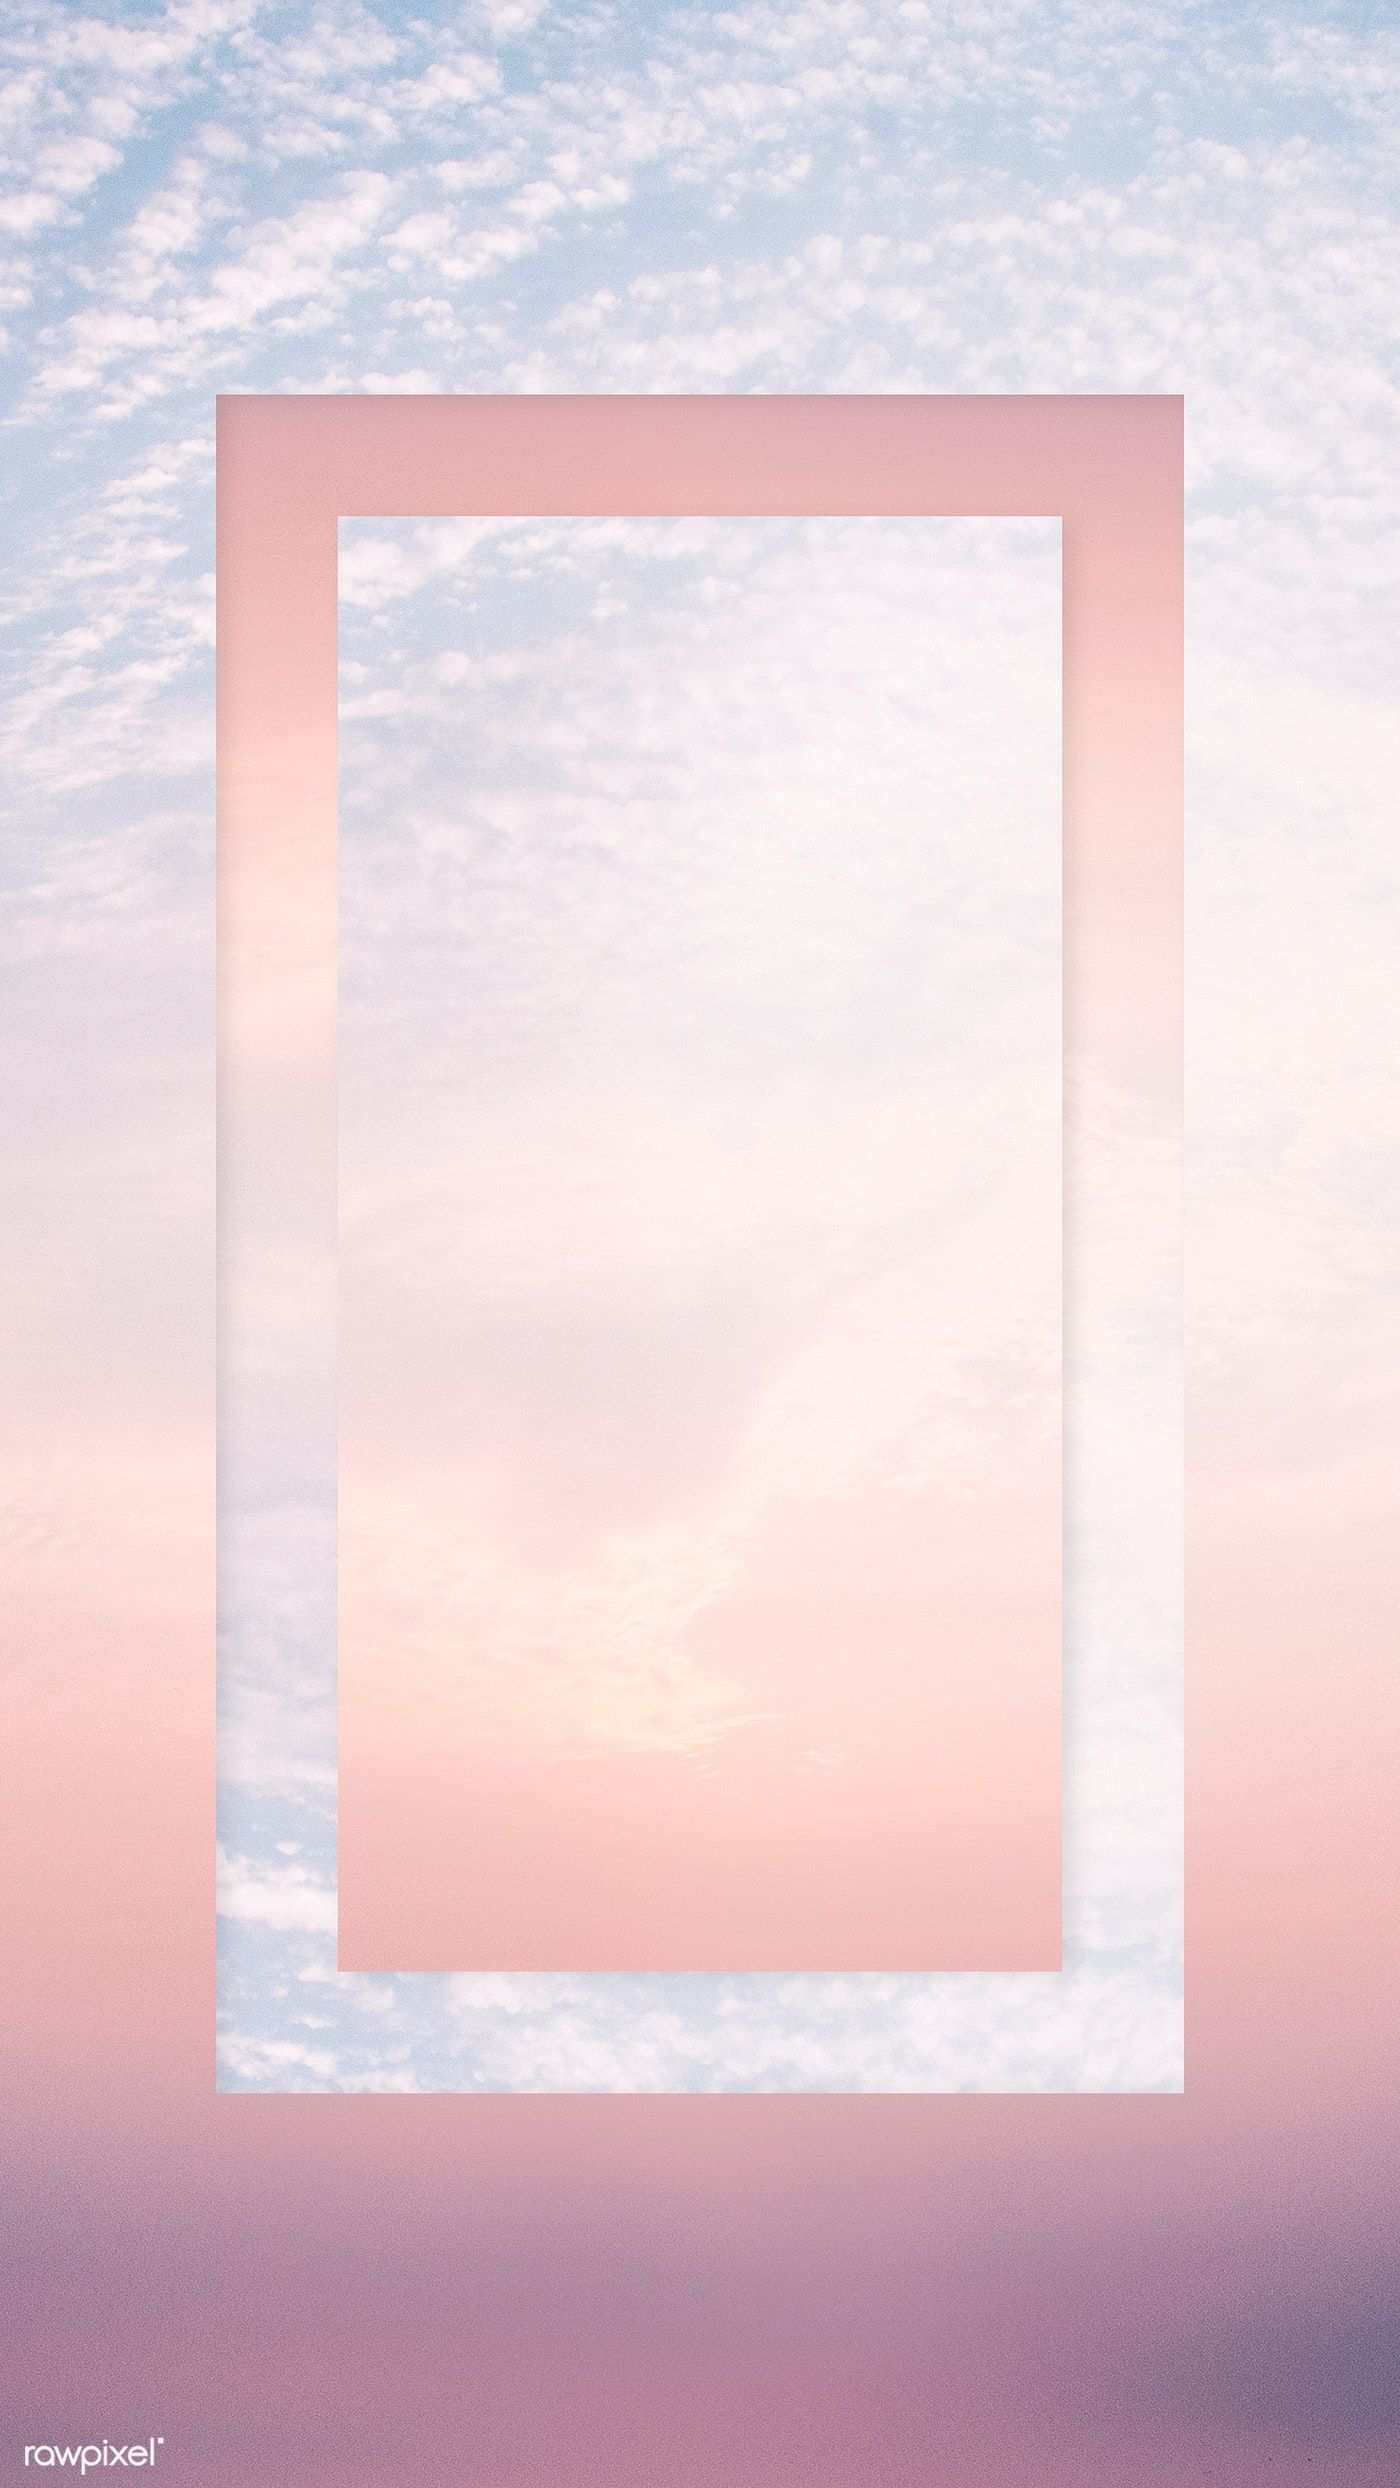 Download Premium Psd Of Cotton Candy Sky With A Rectangle Frame Mobile Cotton Candy Sky Wallpaper Phone Wallpaper